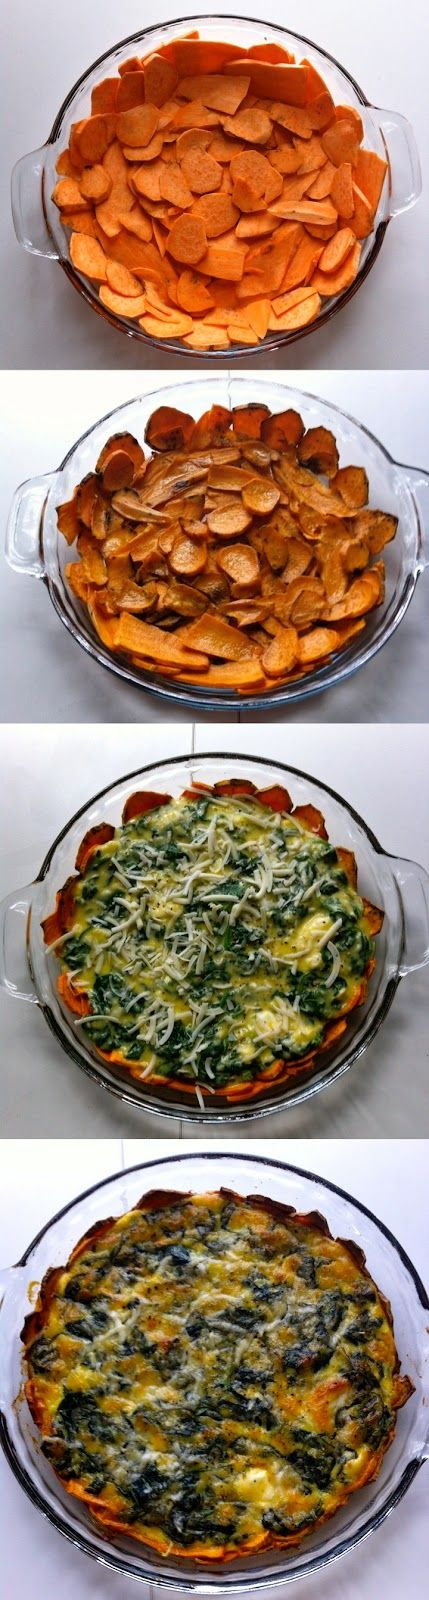 Sweet Potato Crusted Spinach Quiche #food #paleo #sweetpotato